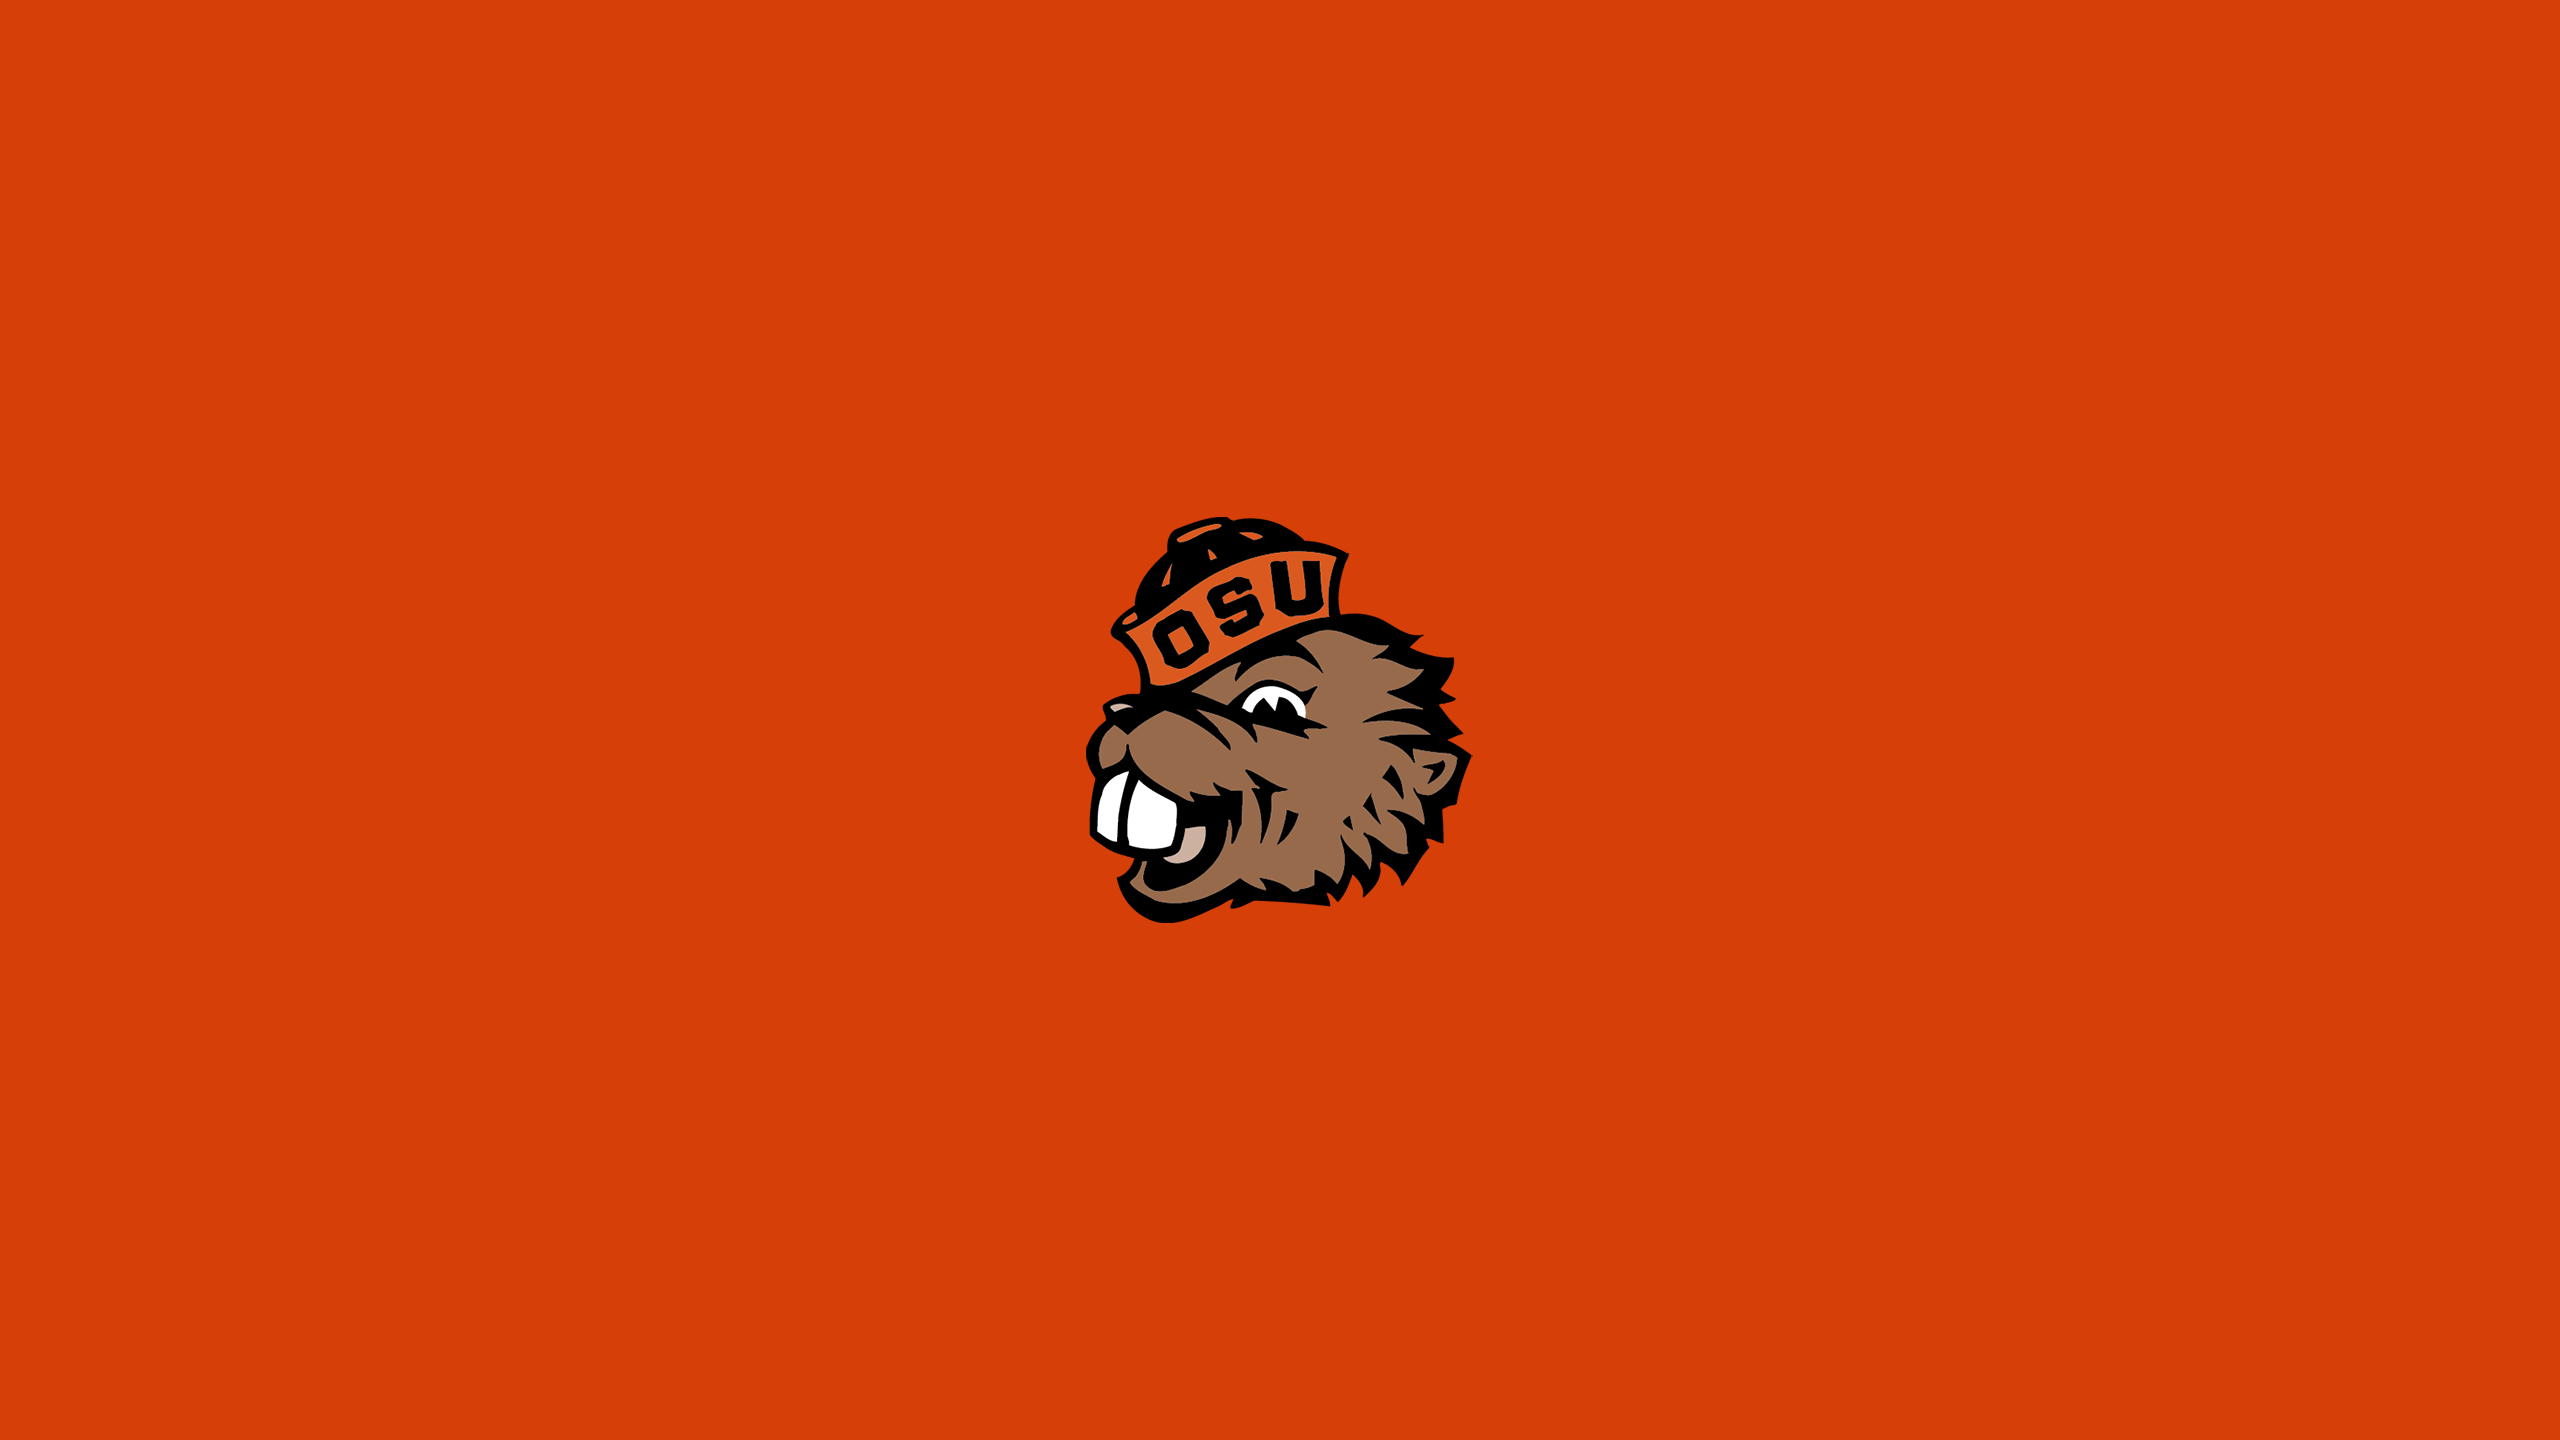 Oregon State University Beavers